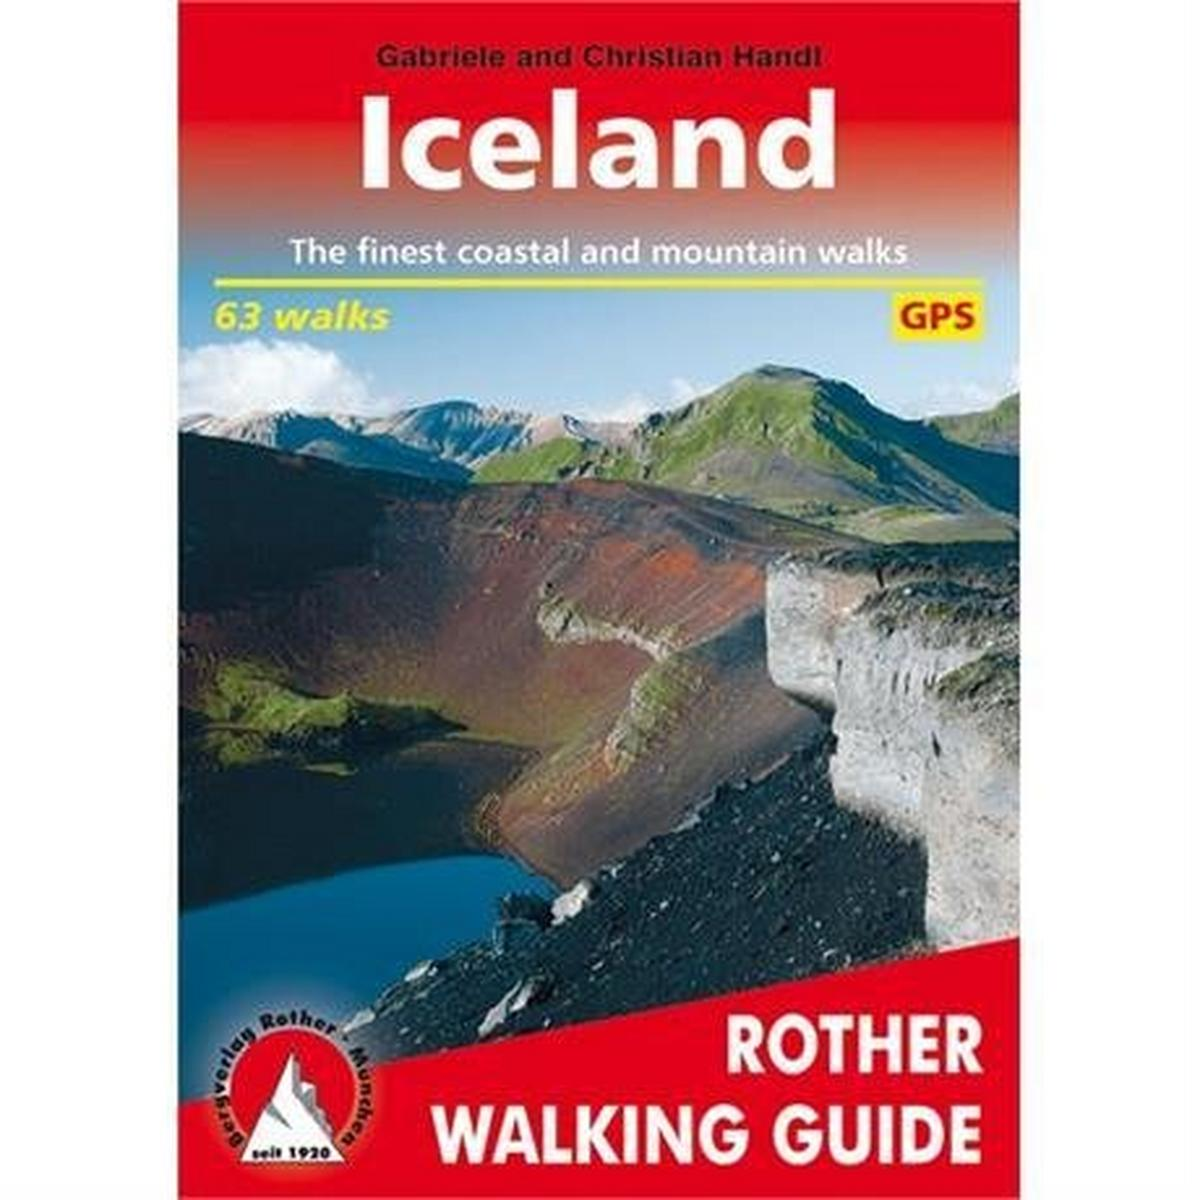 Rother Guides Rother Walking Guide Book: Iceland